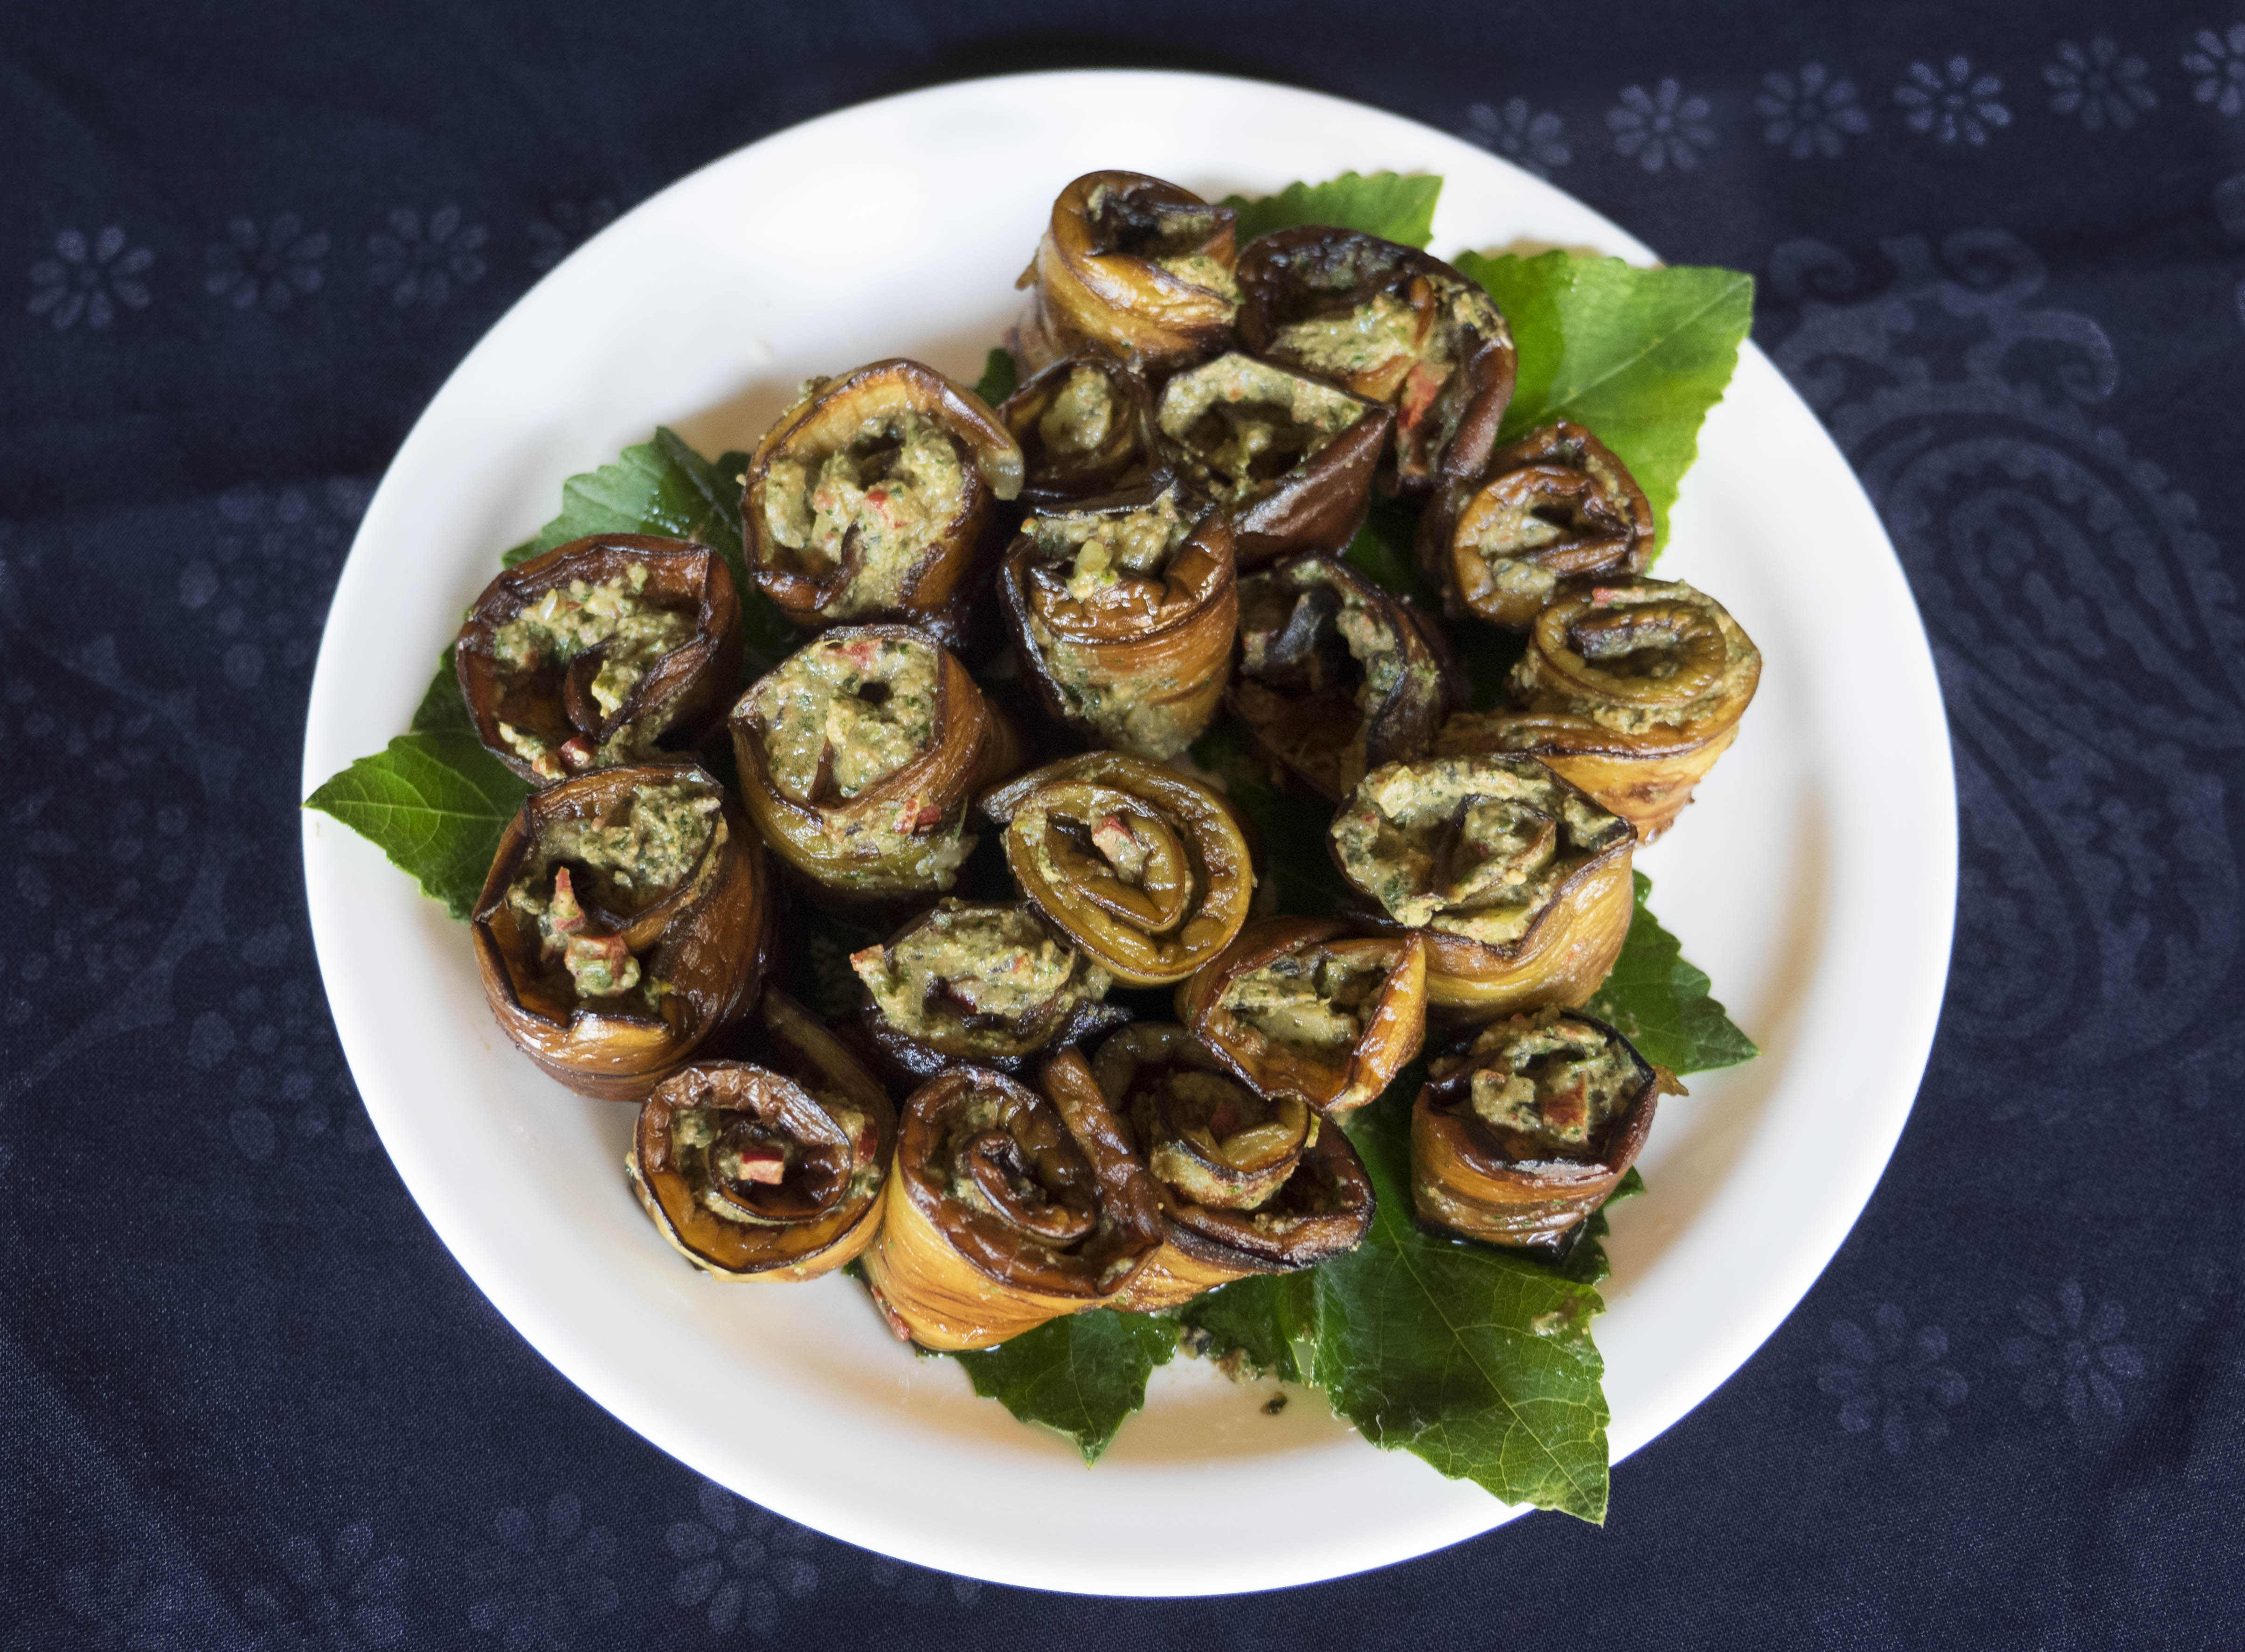 Fried aubergines stuffed with walnut and herb paste